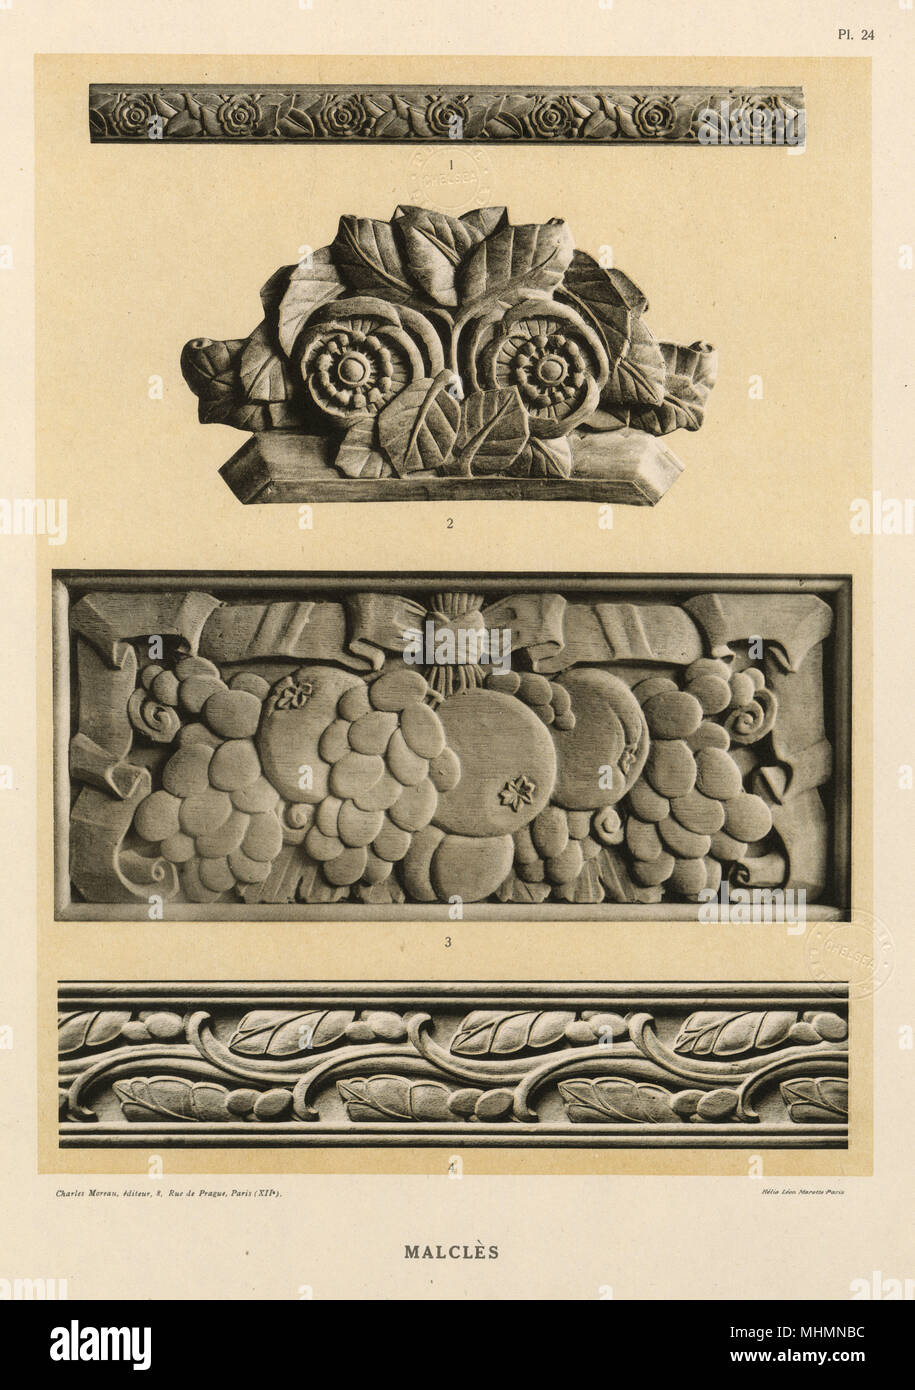 Bas-relief carvings by Laurent Malcles (dates unknown) - bold carving details featuring fruit and flowers - strong and stylised. - Stock Image